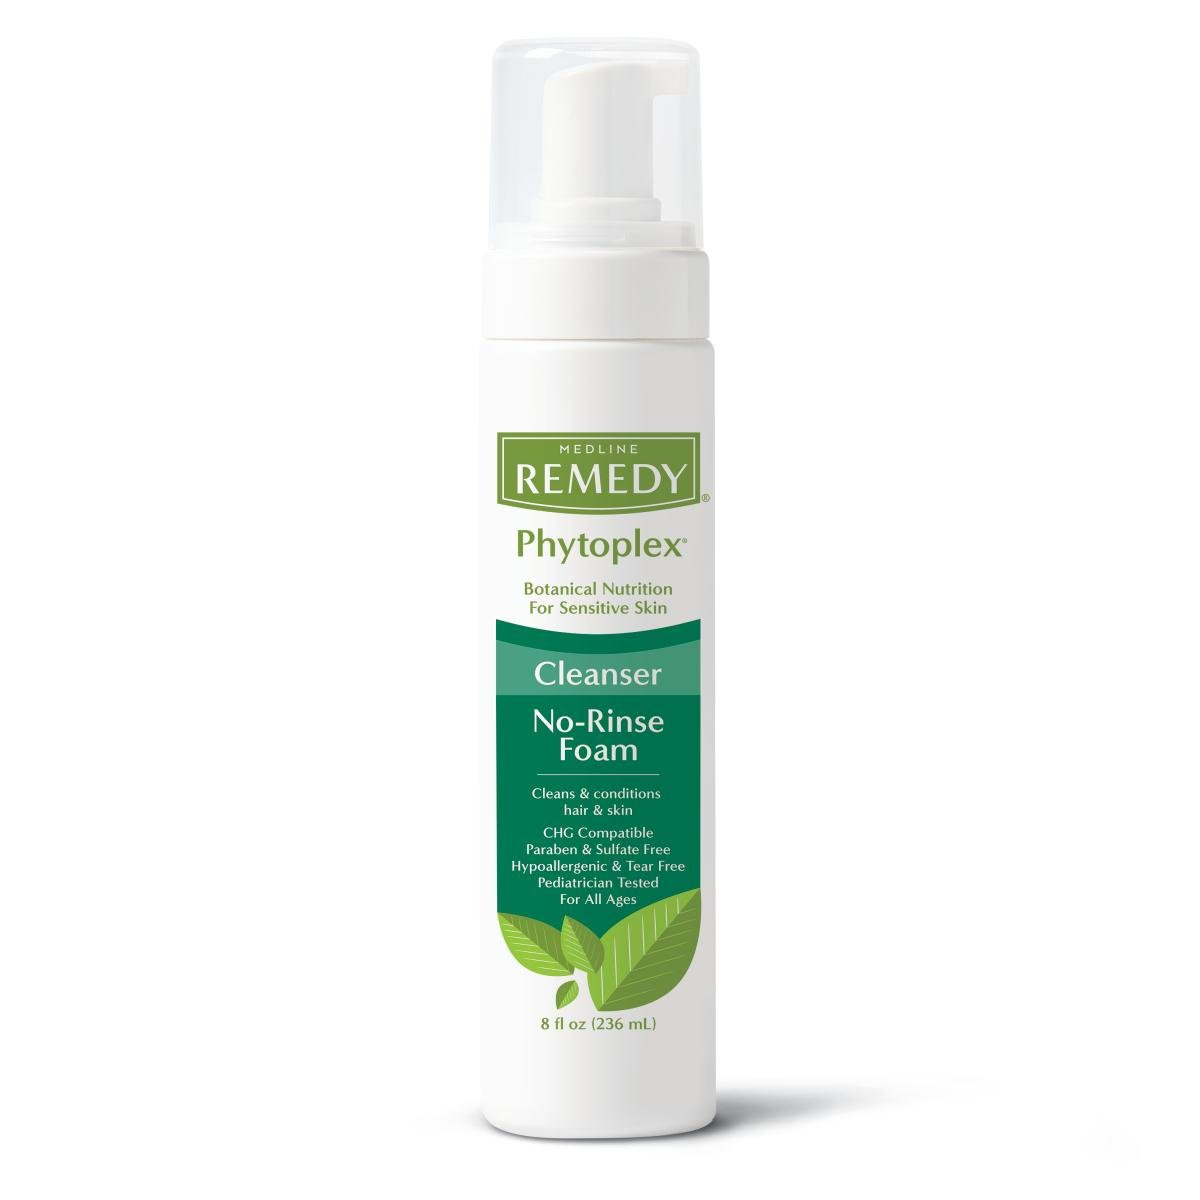 REMEDY PHYTOPLEX CLEANSER NO-RINSE FOAM 236ML EACH